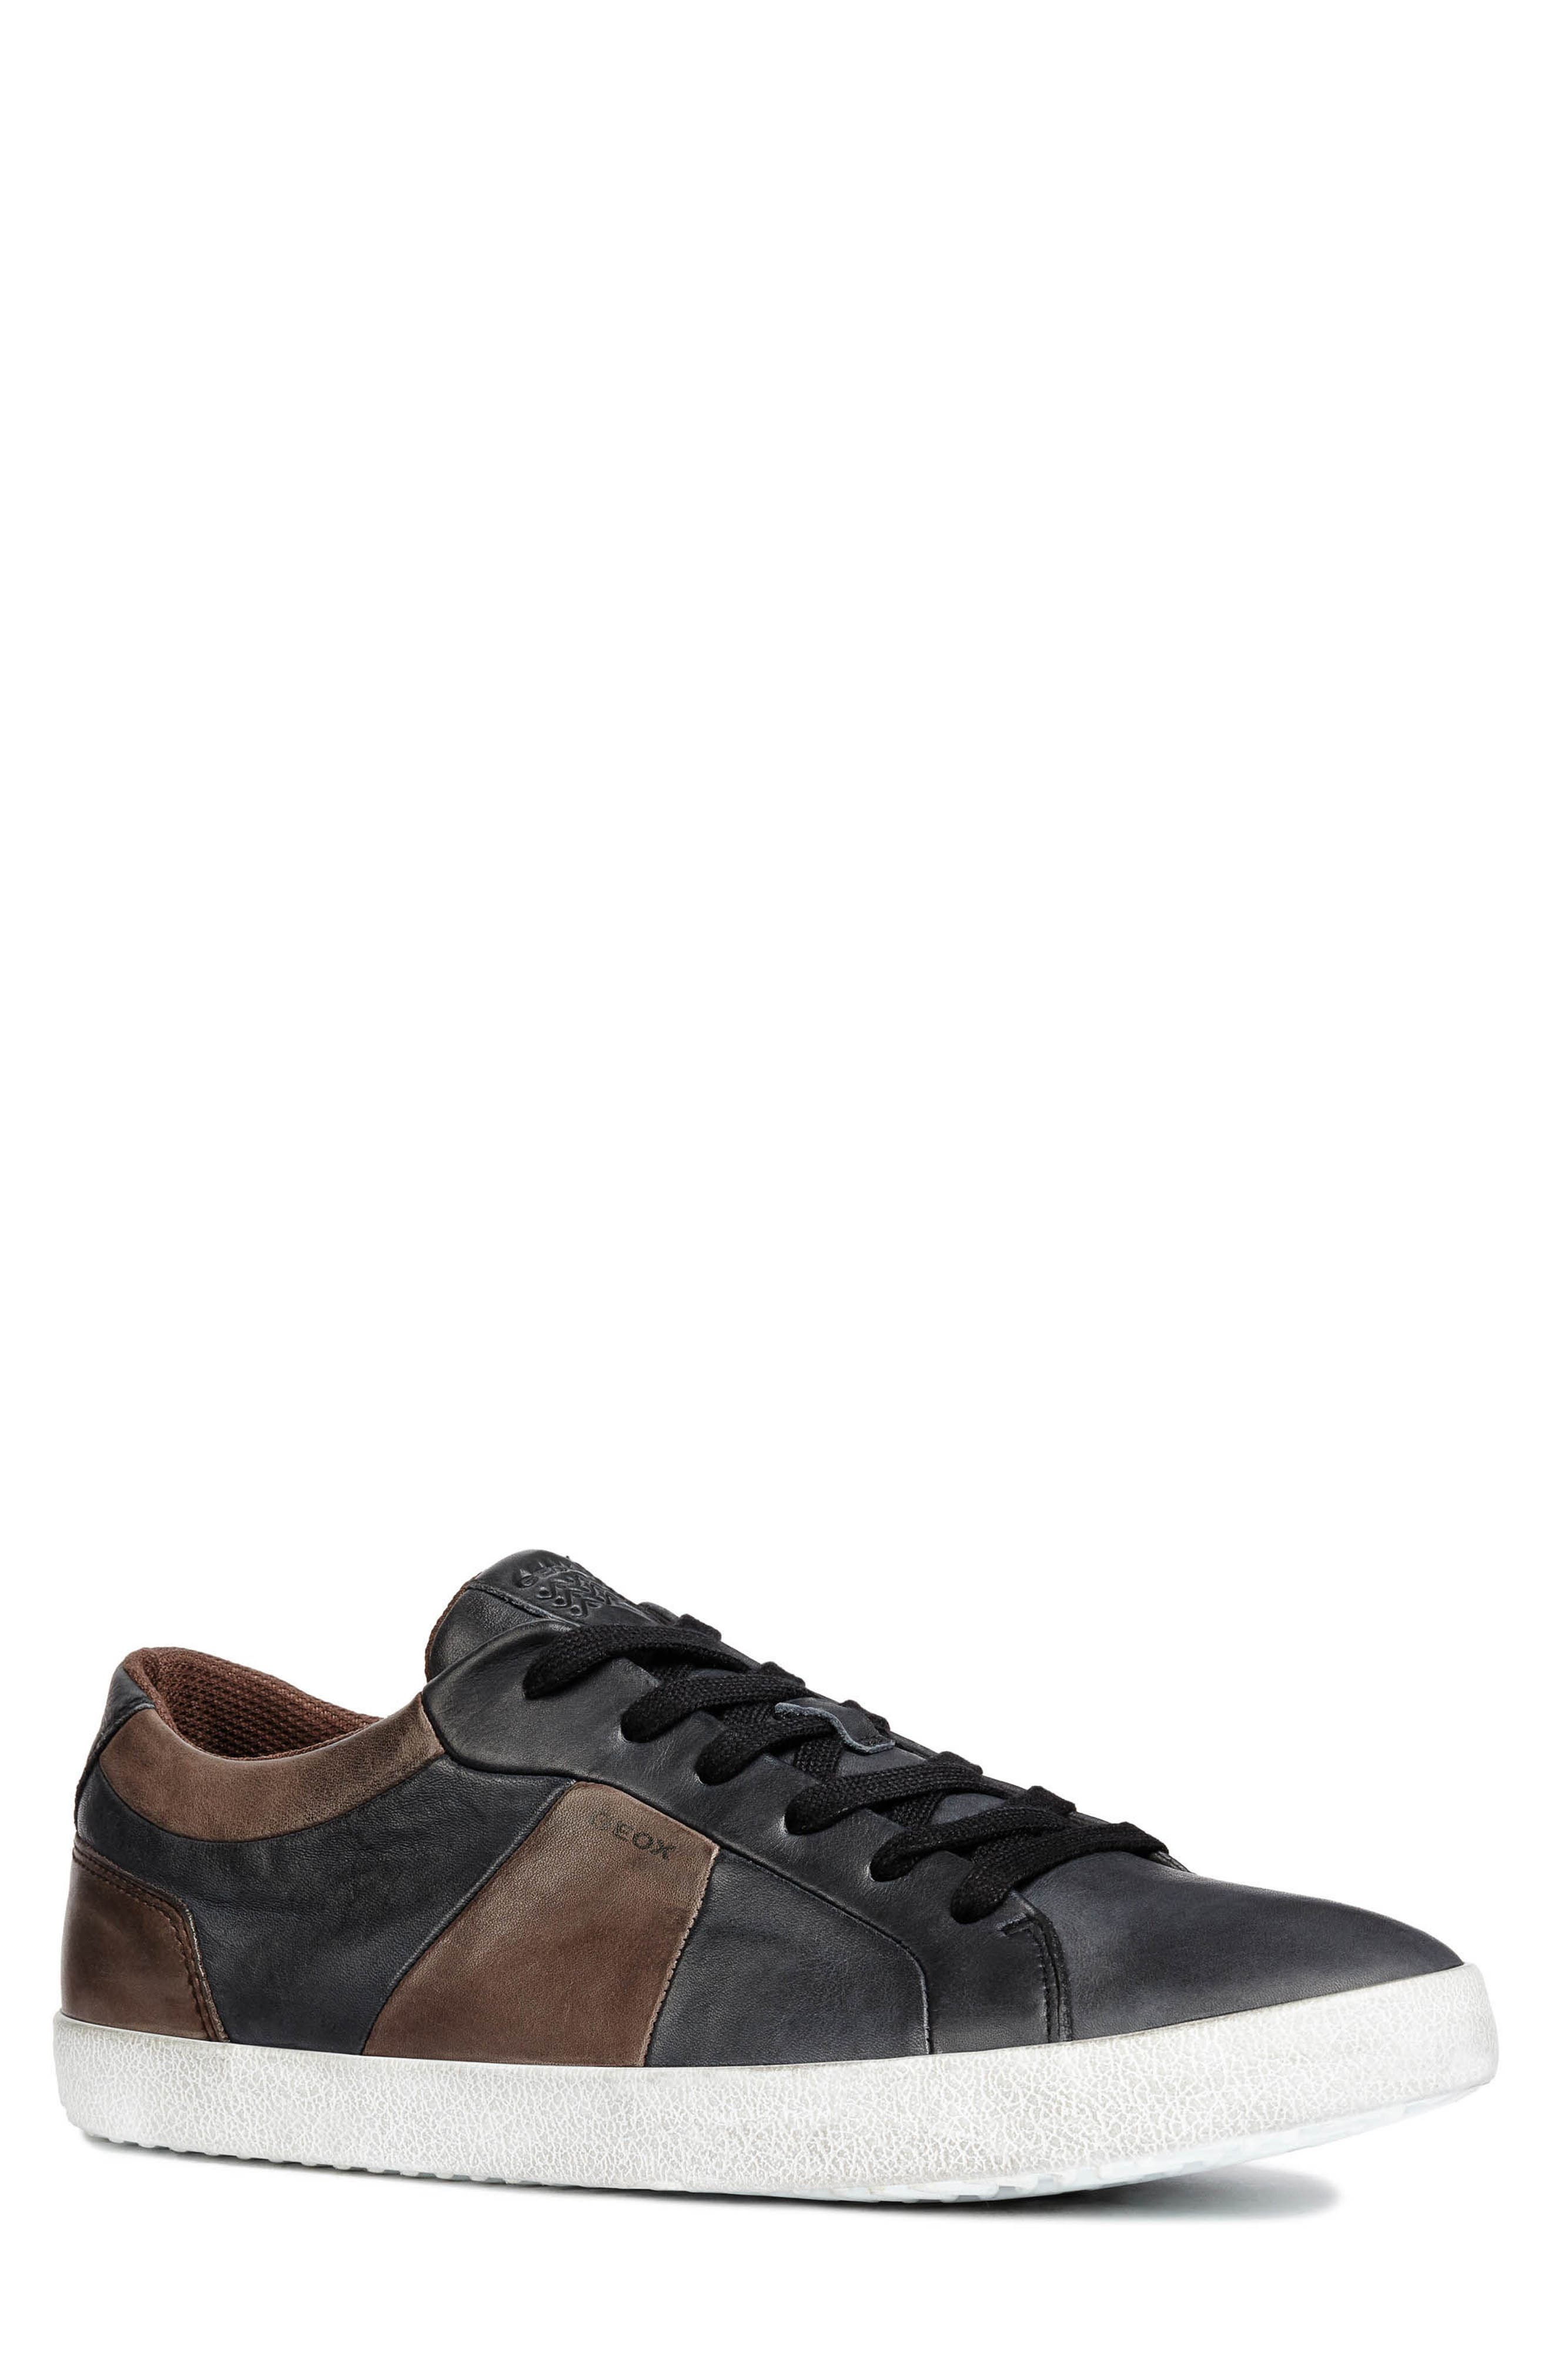 Smart 85 Low Top Sneaker,                         Main,                         color, BLACK/ COFFEE LEATHER